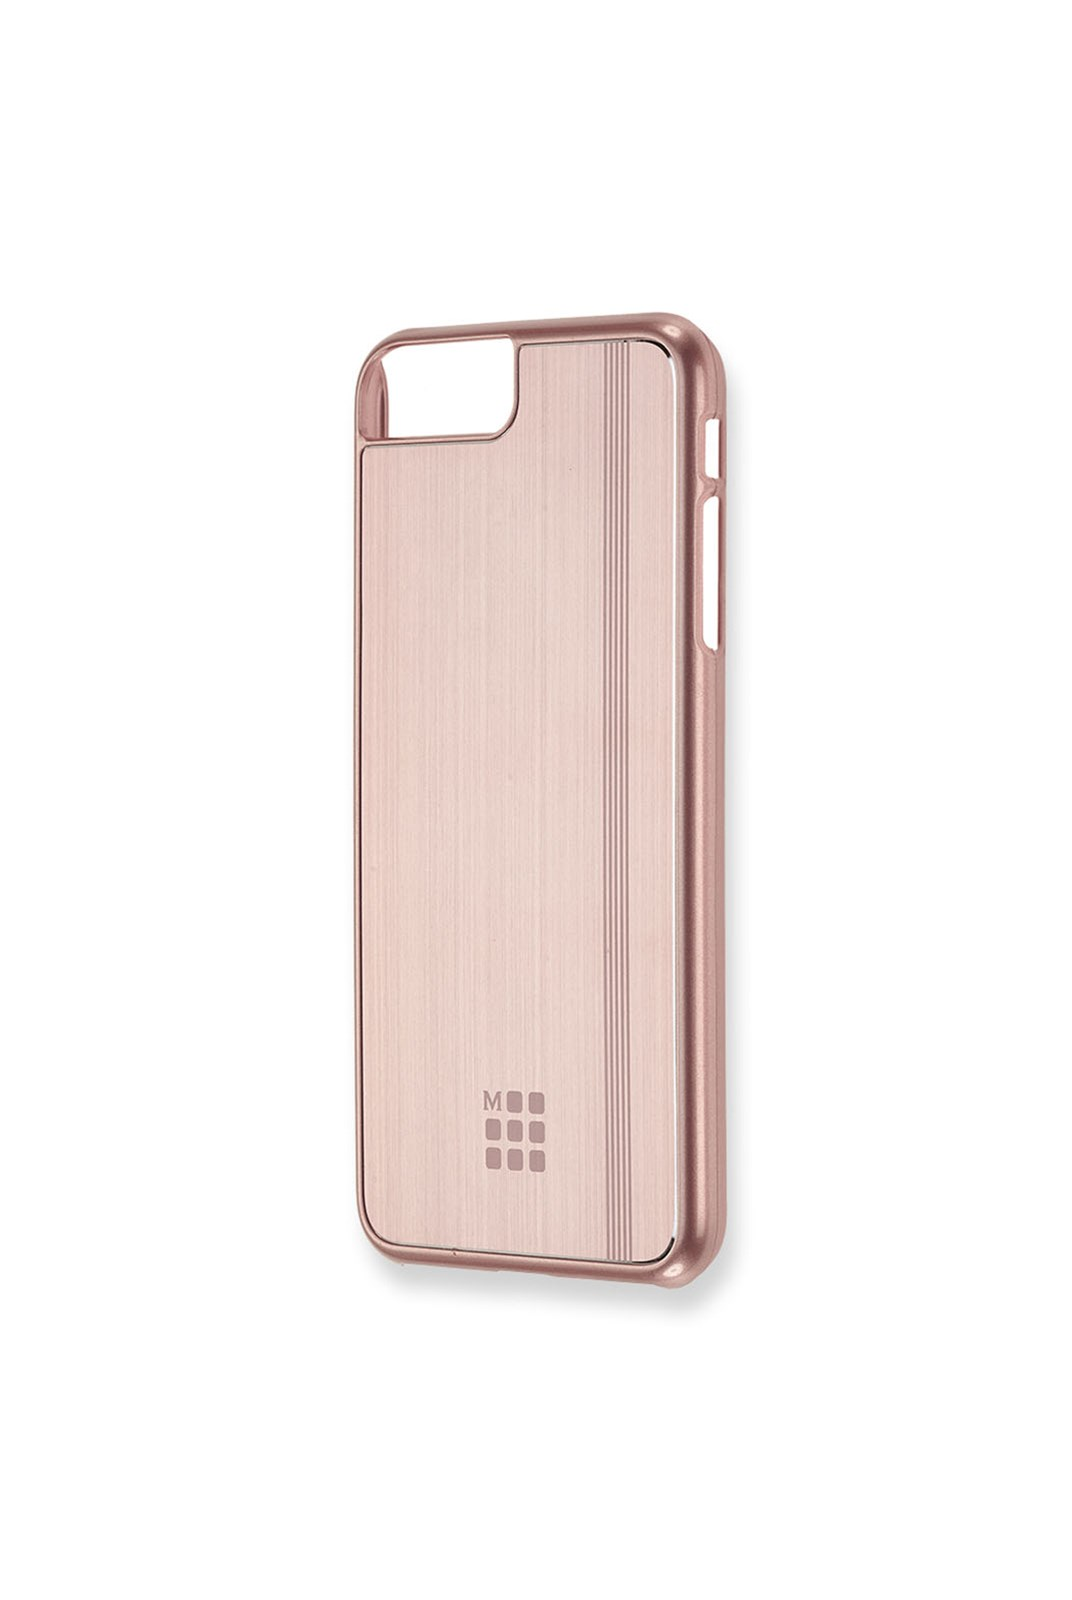 Moleskine - Aluminium iPhone Hard Case - 6Plus/7Plus/8Plus - Rose Gold